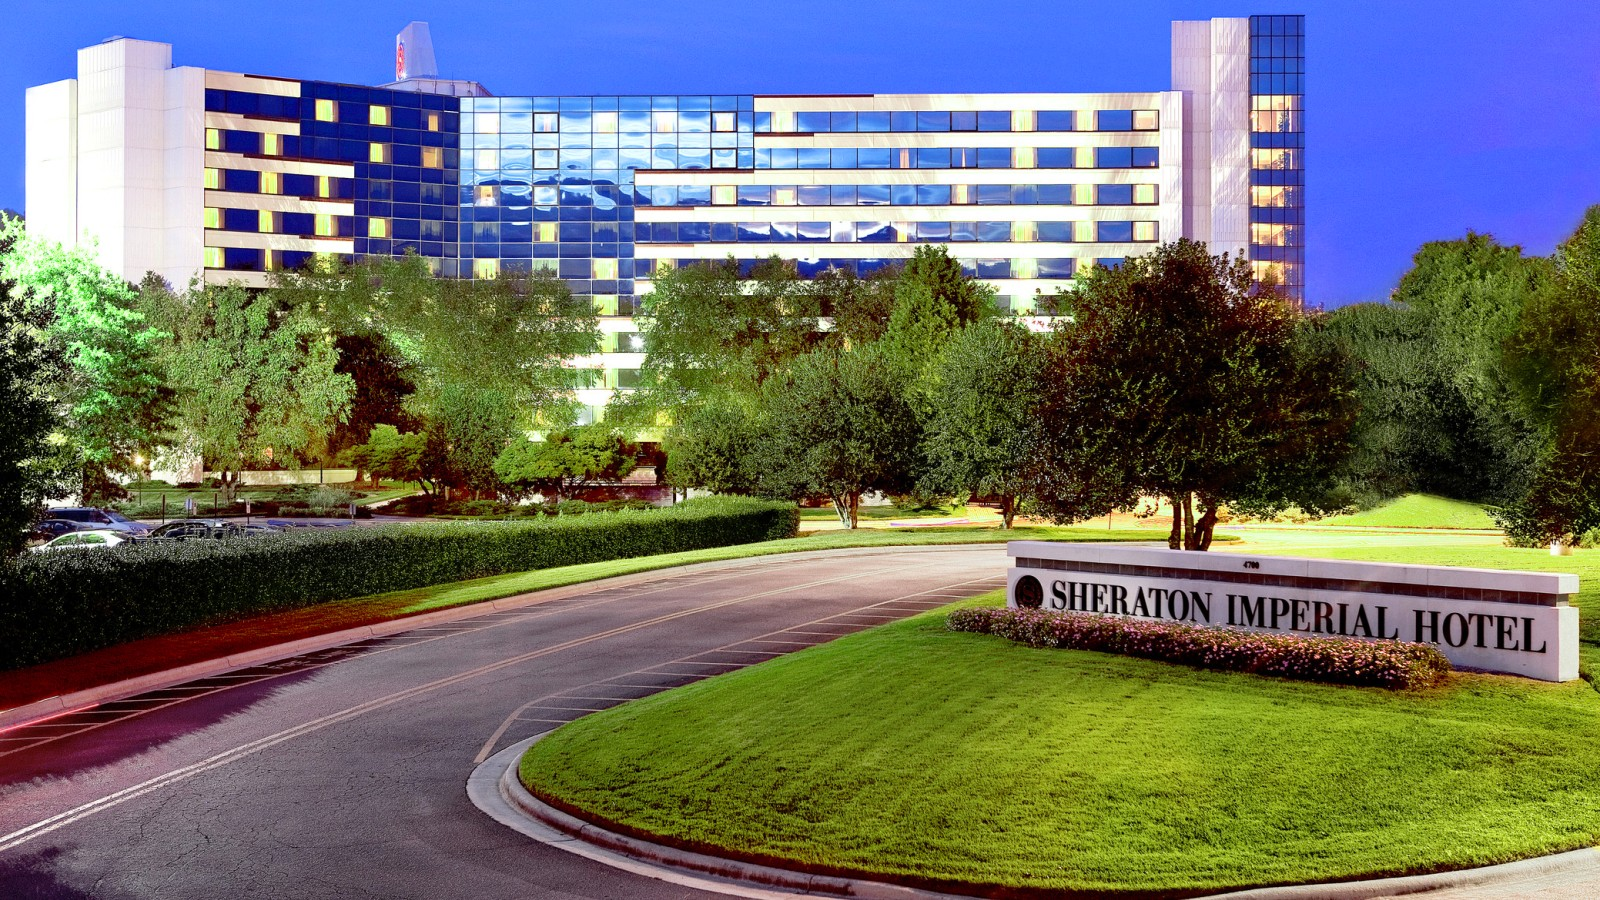 Sheraton Imperial Hotel & Convention Center, Durham